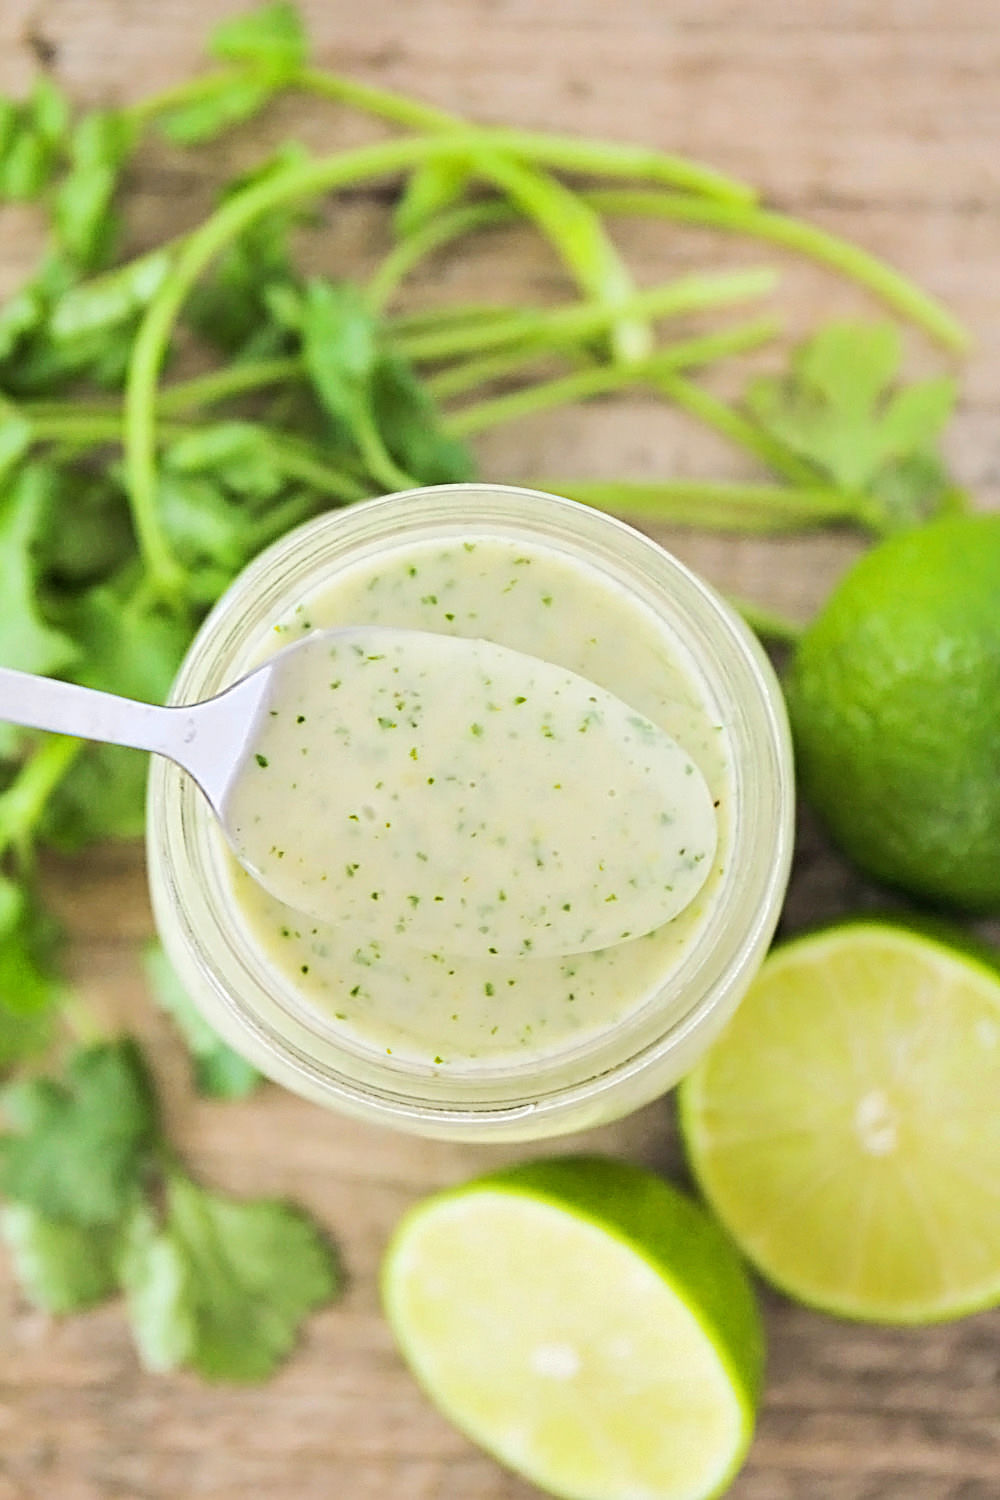 This creamy and delicious cilantro lime dressing takes only a few minutes to make!